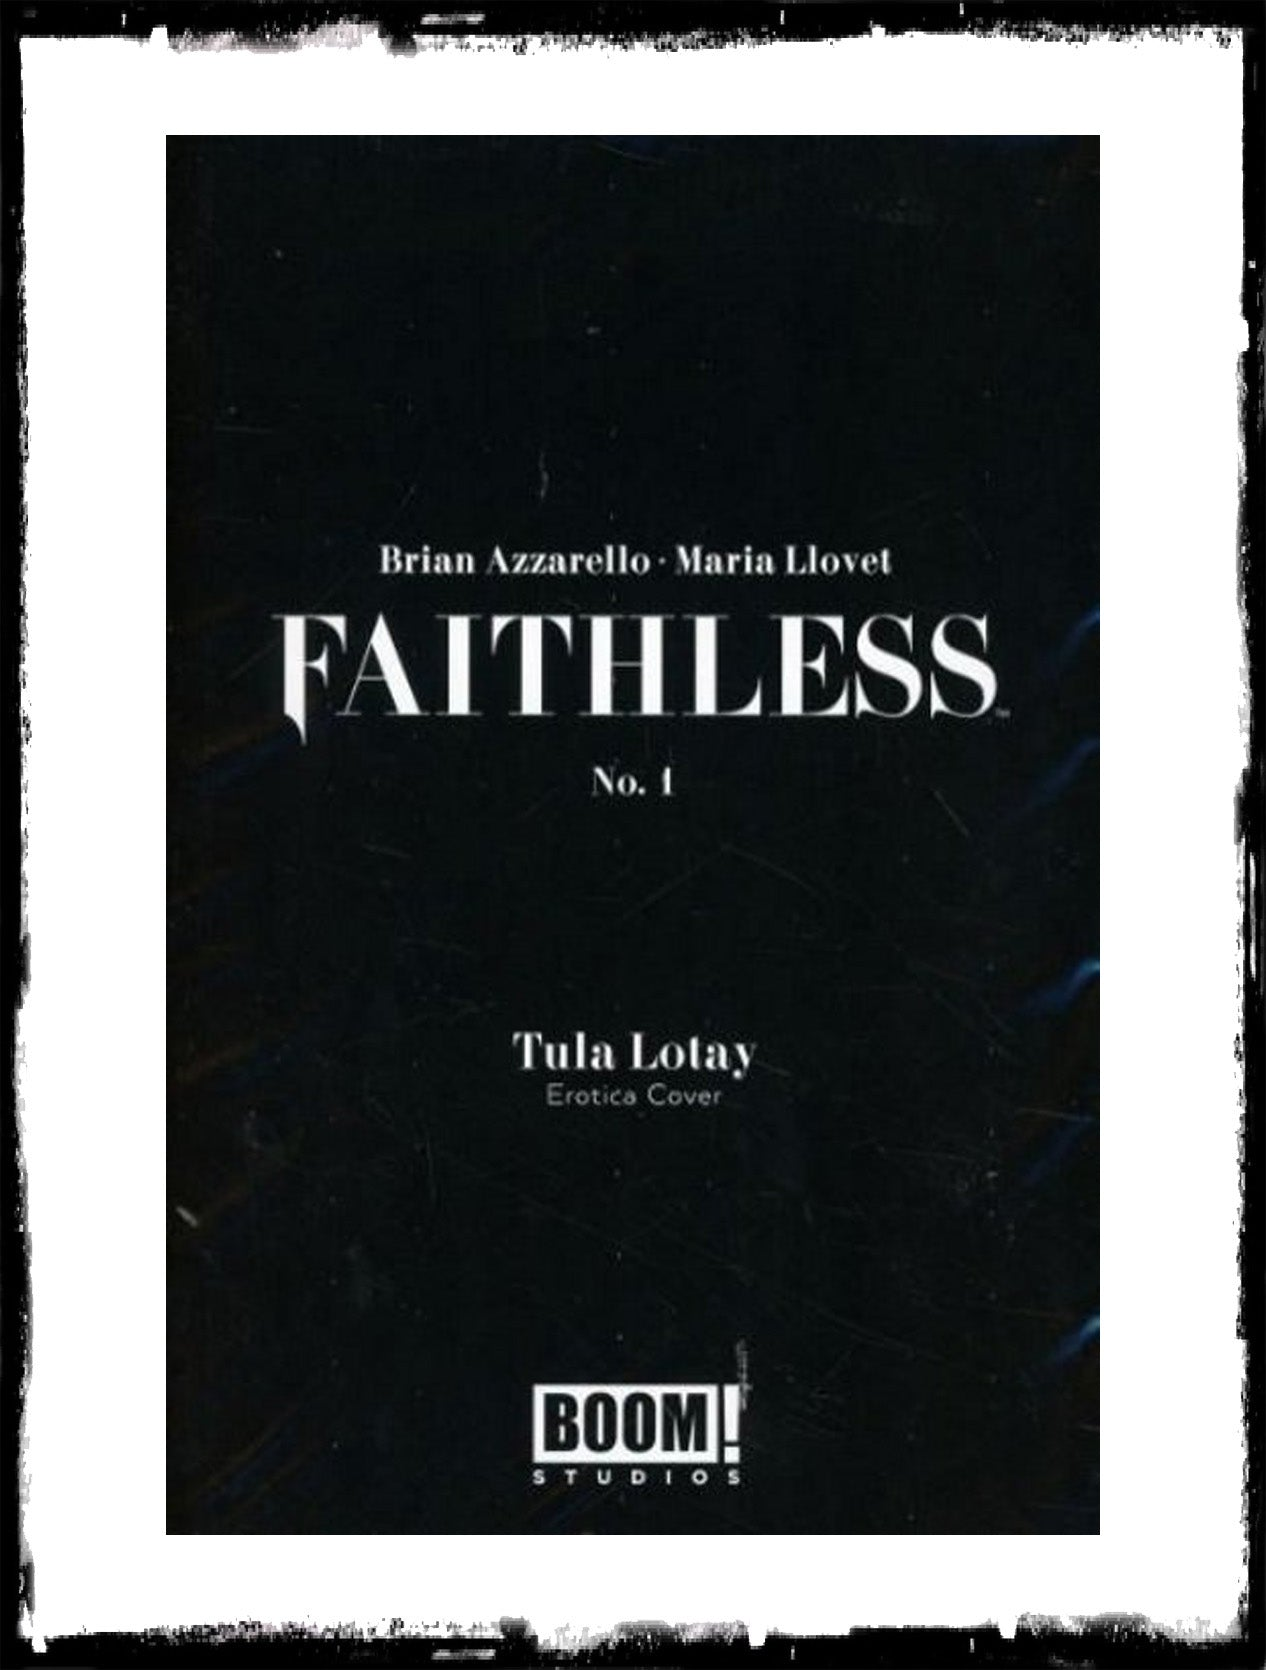 FAITHLESS - #1 TULA LOTAY EROTICA VARIANT COVER WITH POLYBAG (2019 - CONDITION NM)